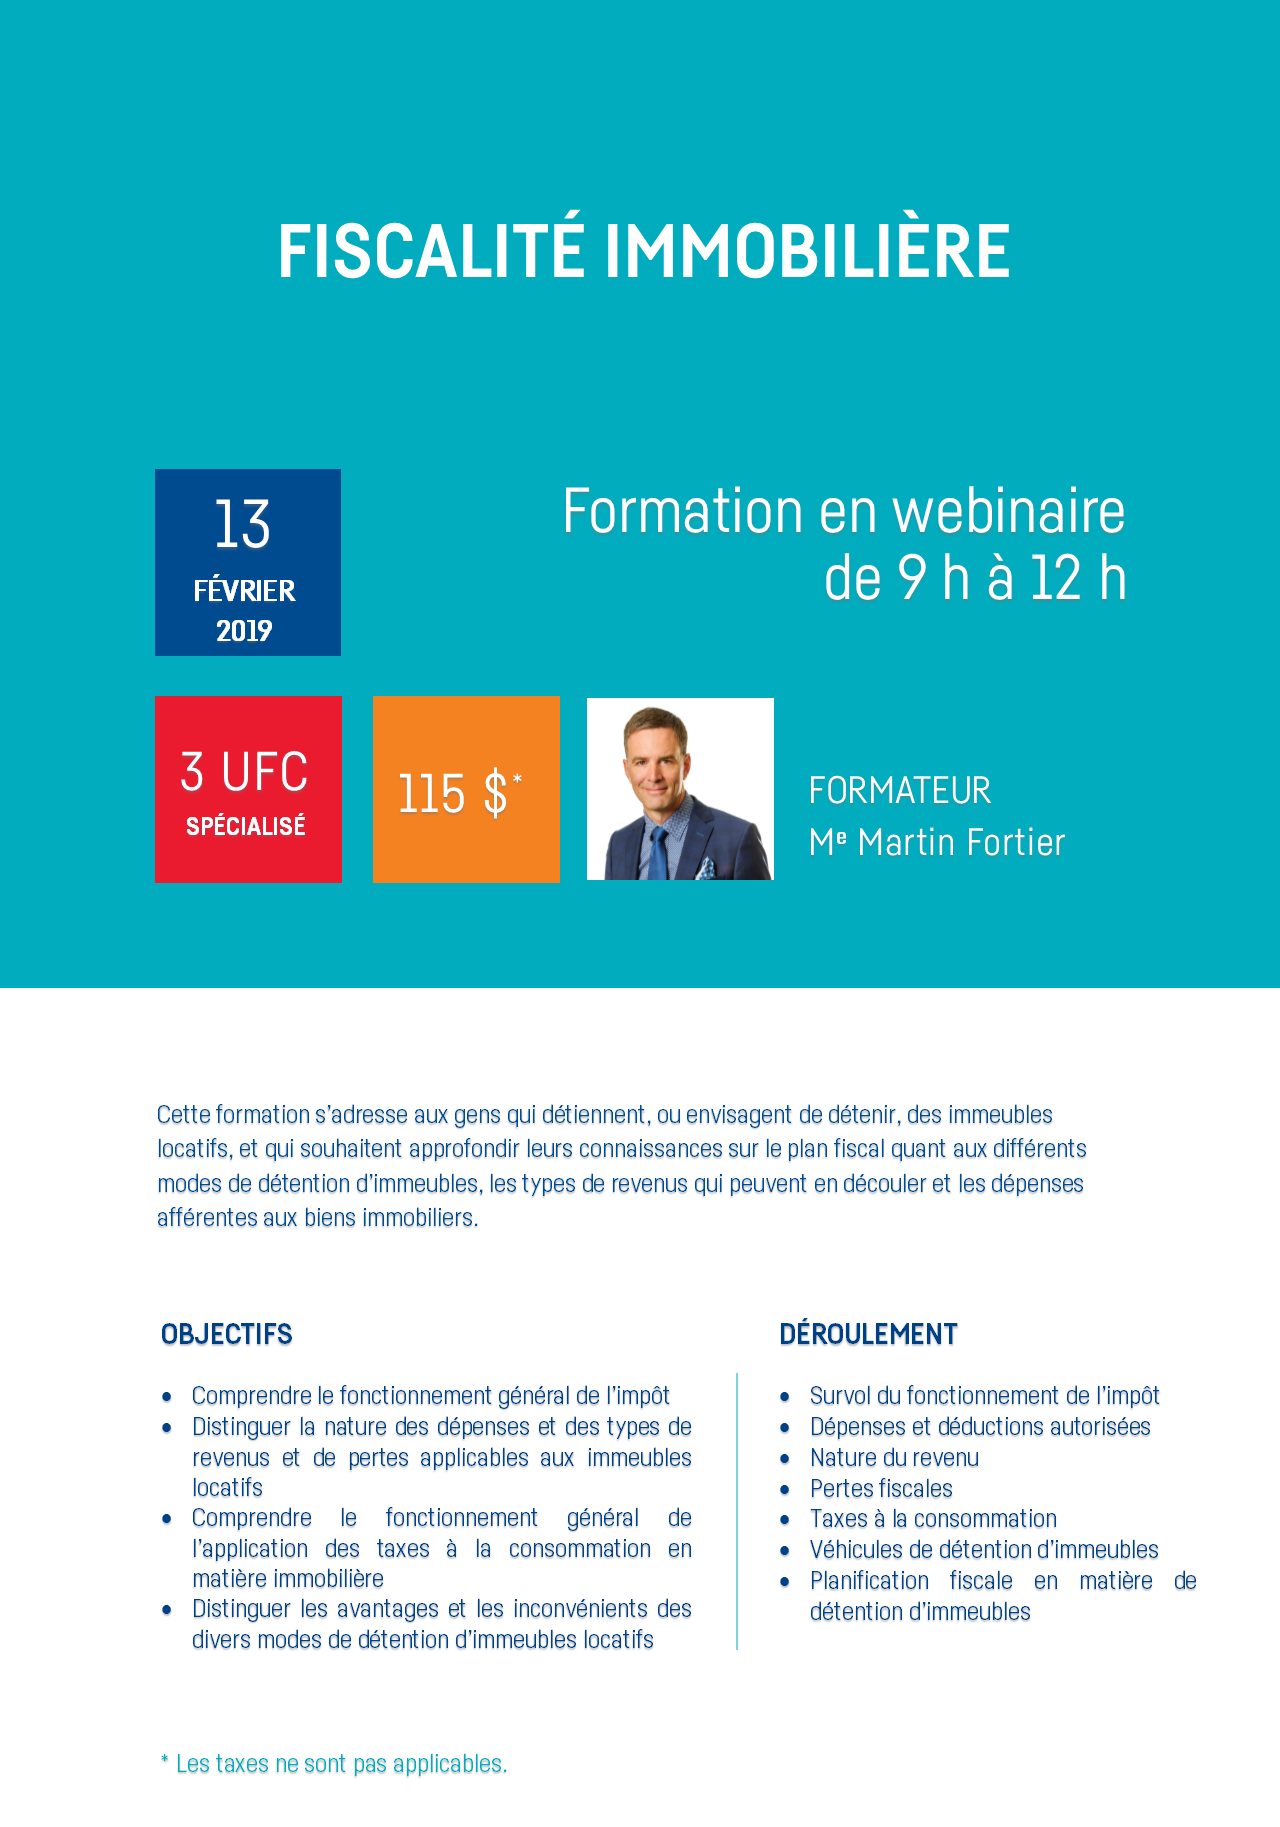 Fiscalite_immobiliere_Martin_Fortier_20190213